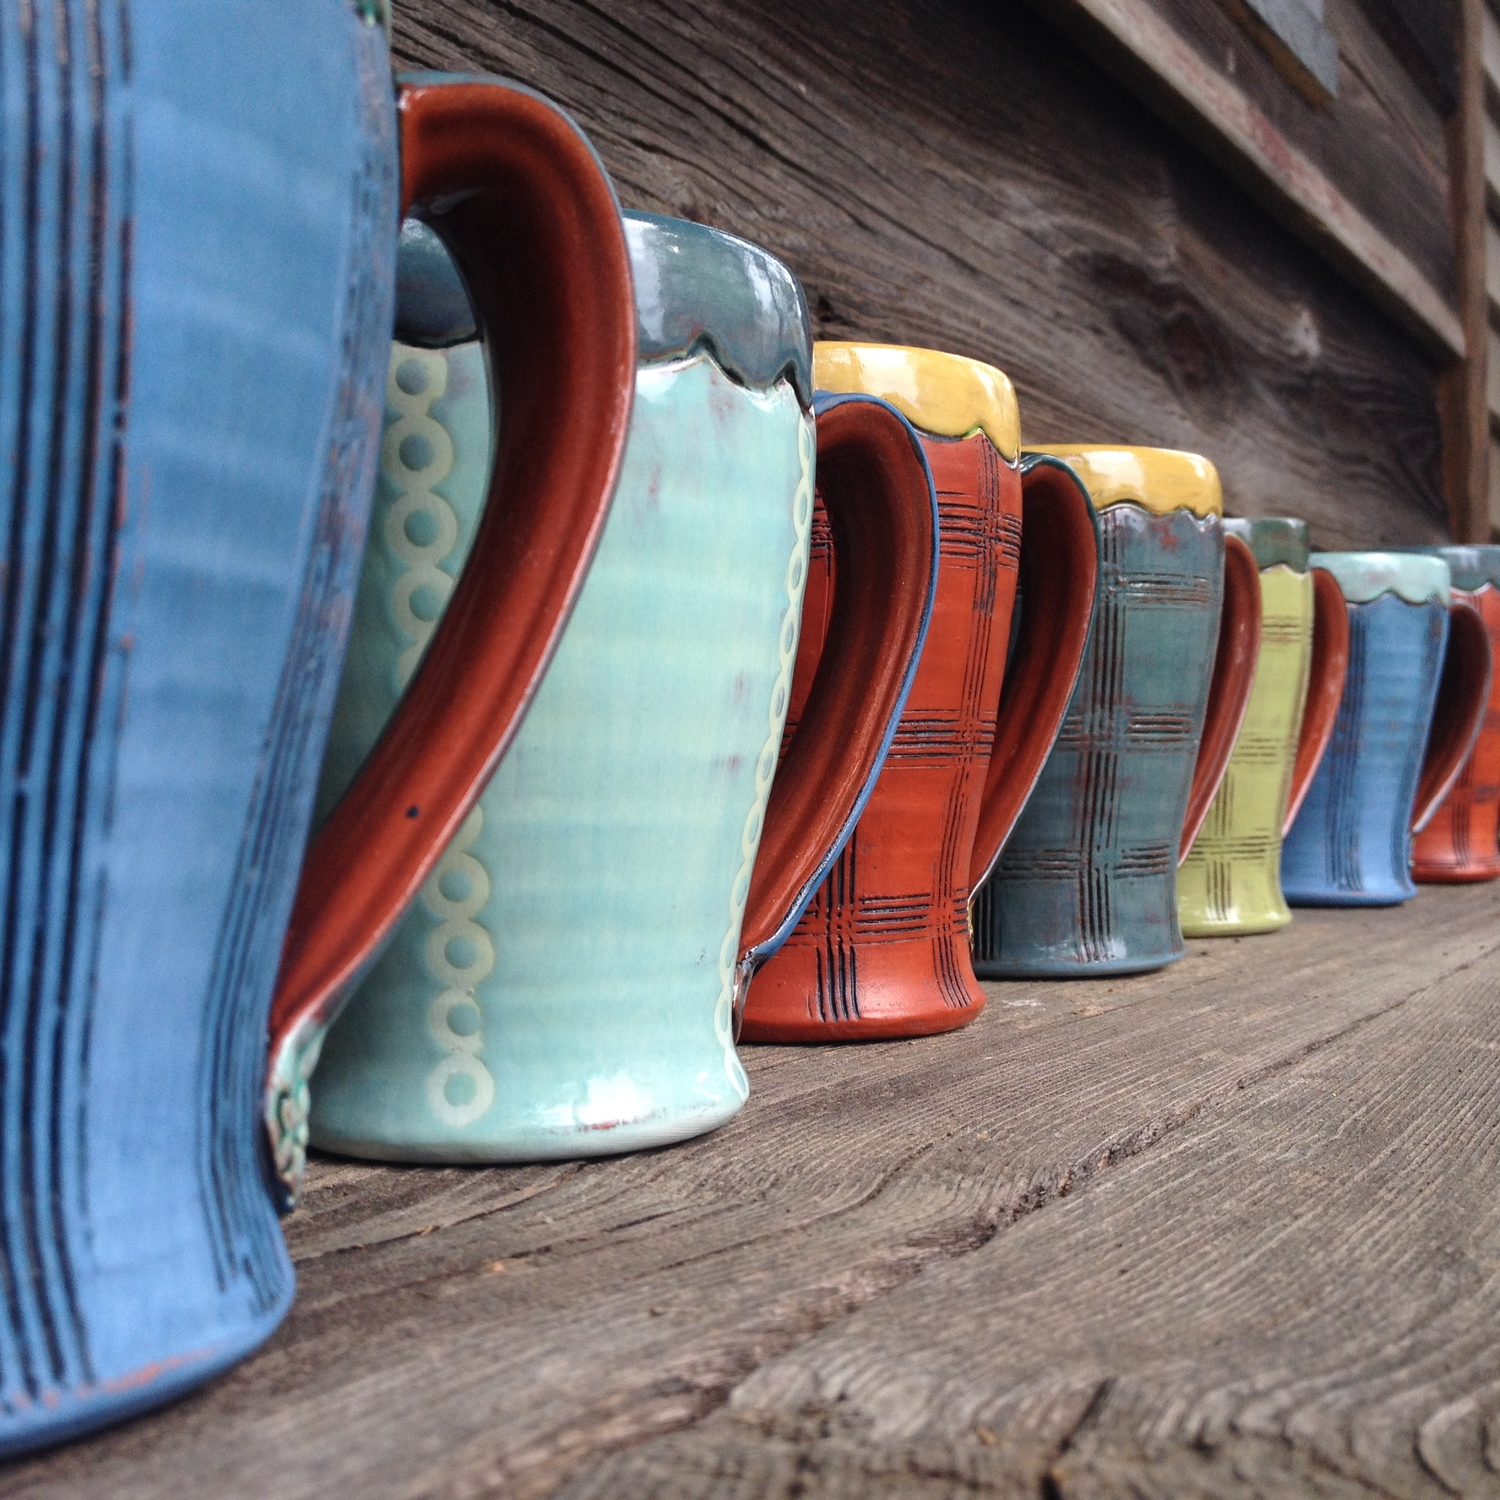 Row of vibrant colored ceramic coffee mugs created by artist Amy Sanders.